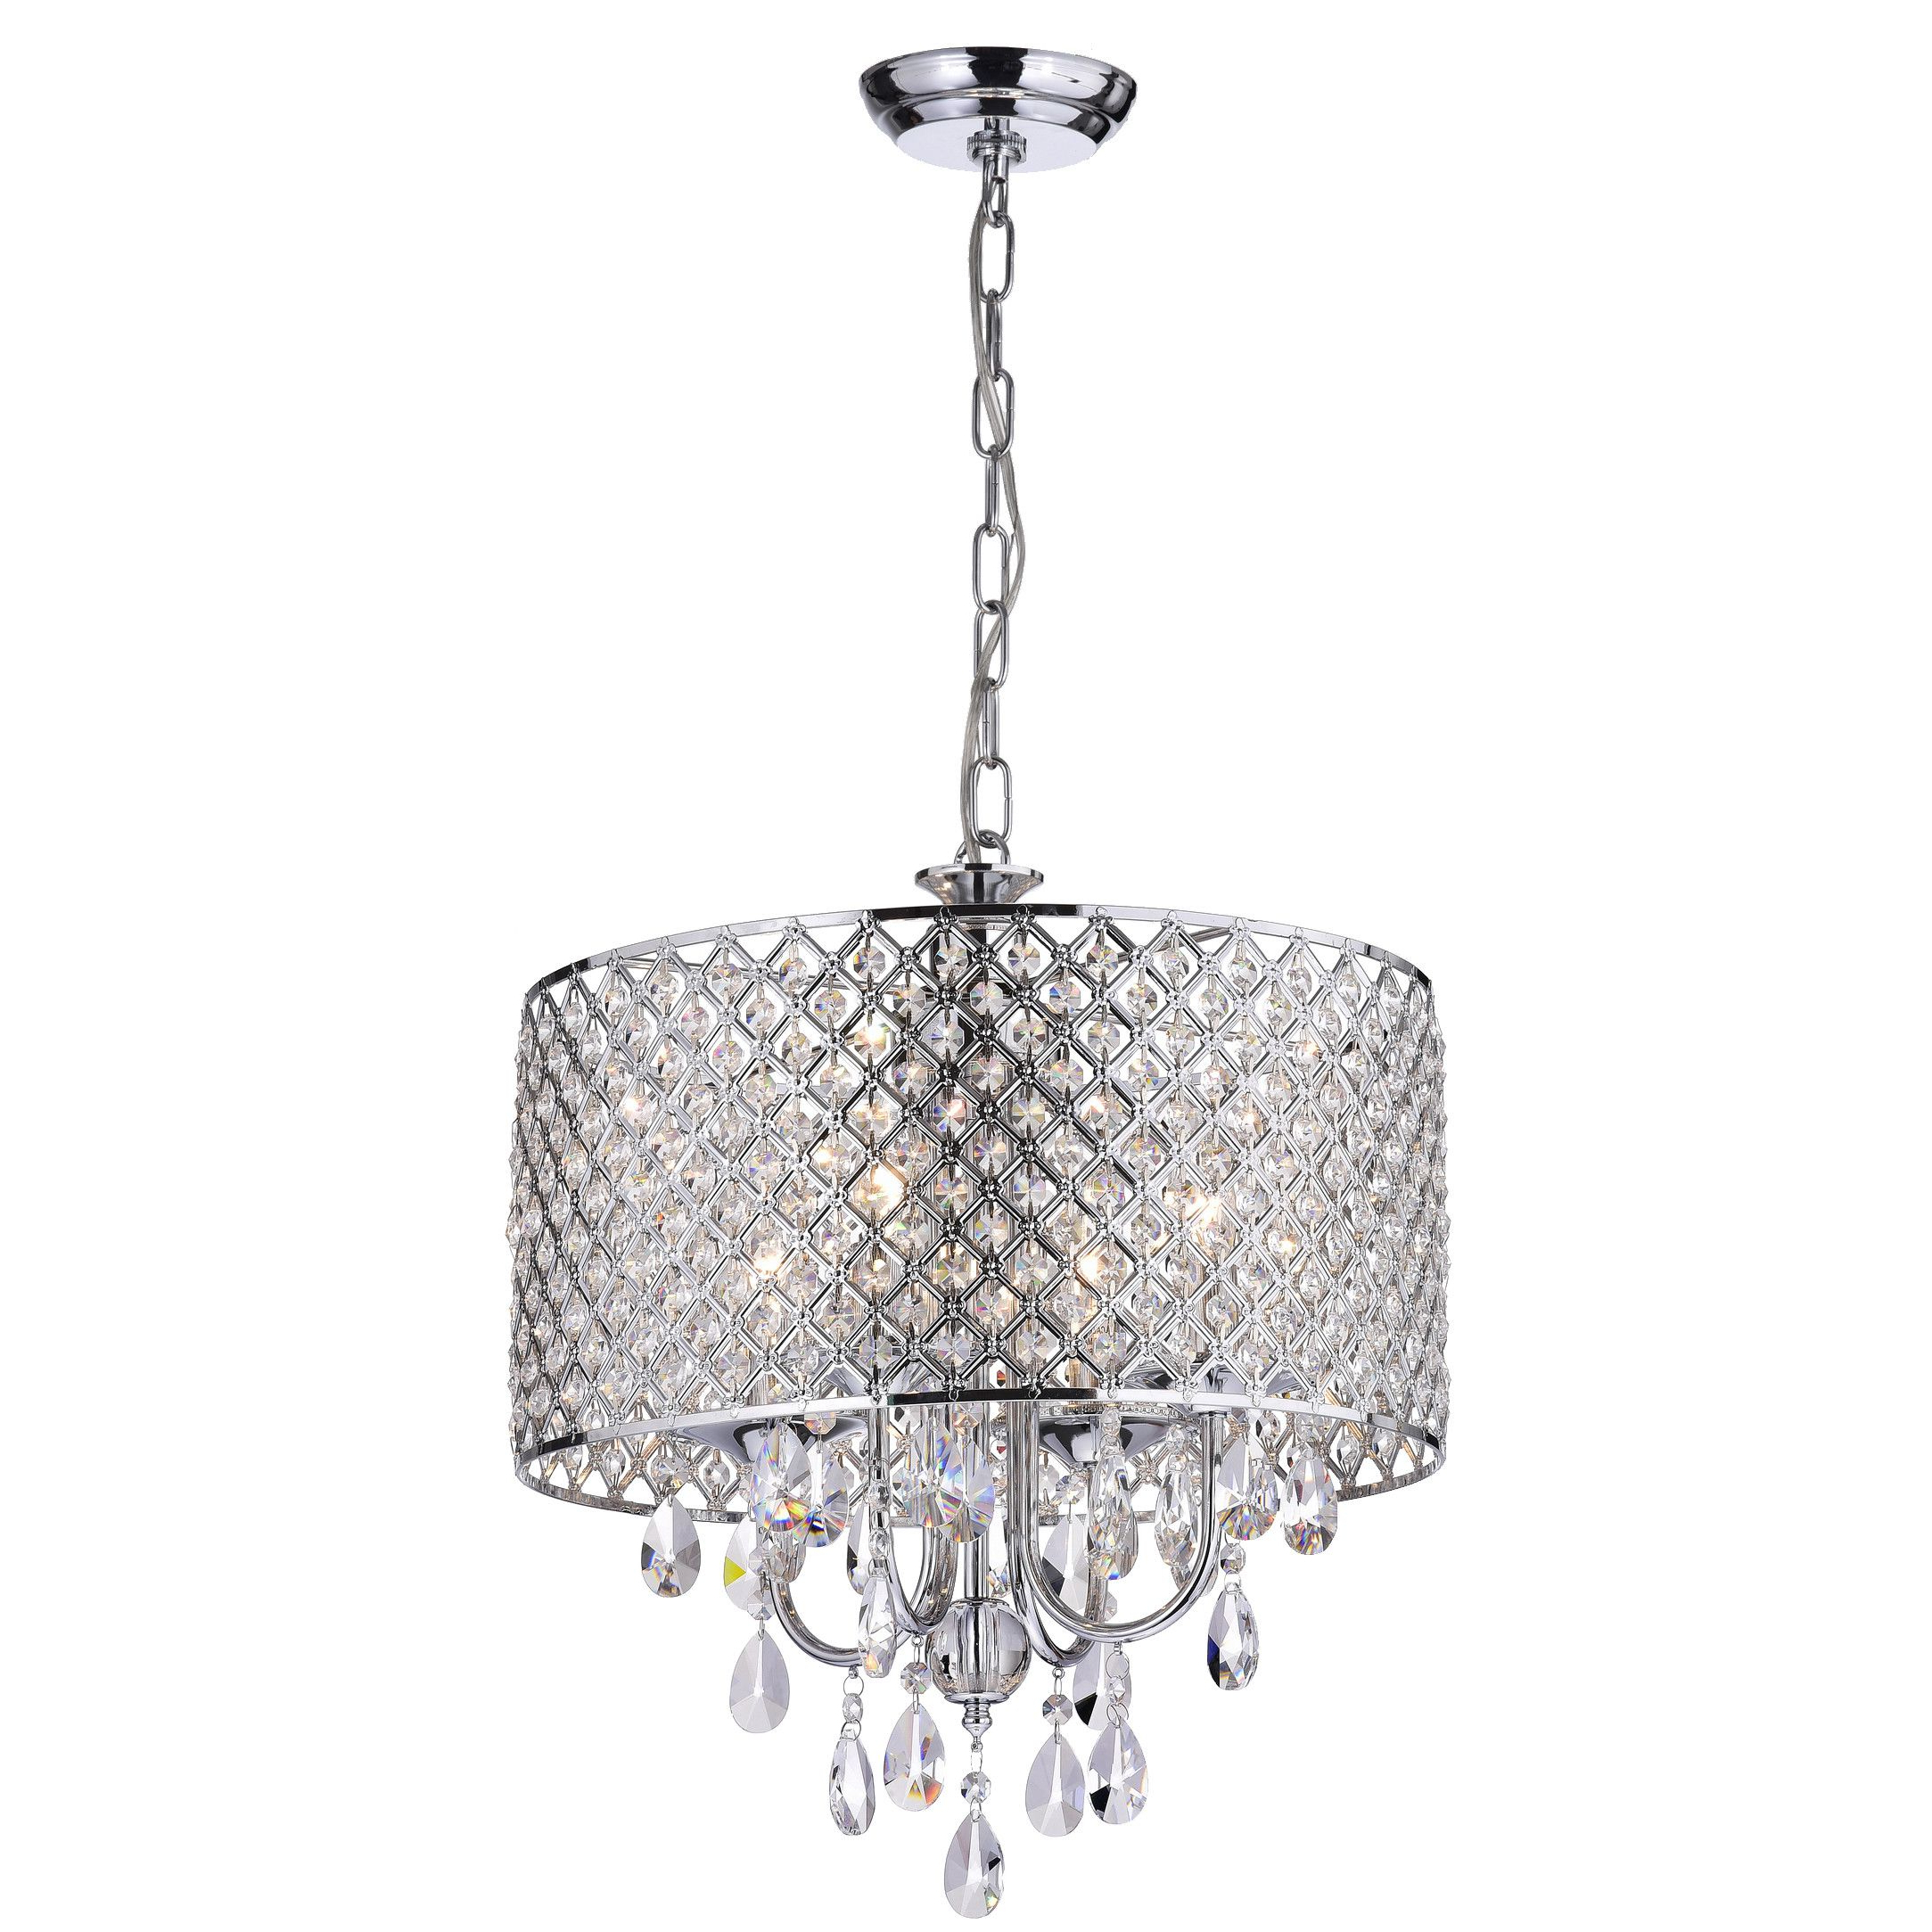 Most Recent Aurore 4 Light Crystal Chandeliers With Regard To Edvivi Marya 4 Light Crystal Chandelier (View 10 of 25)